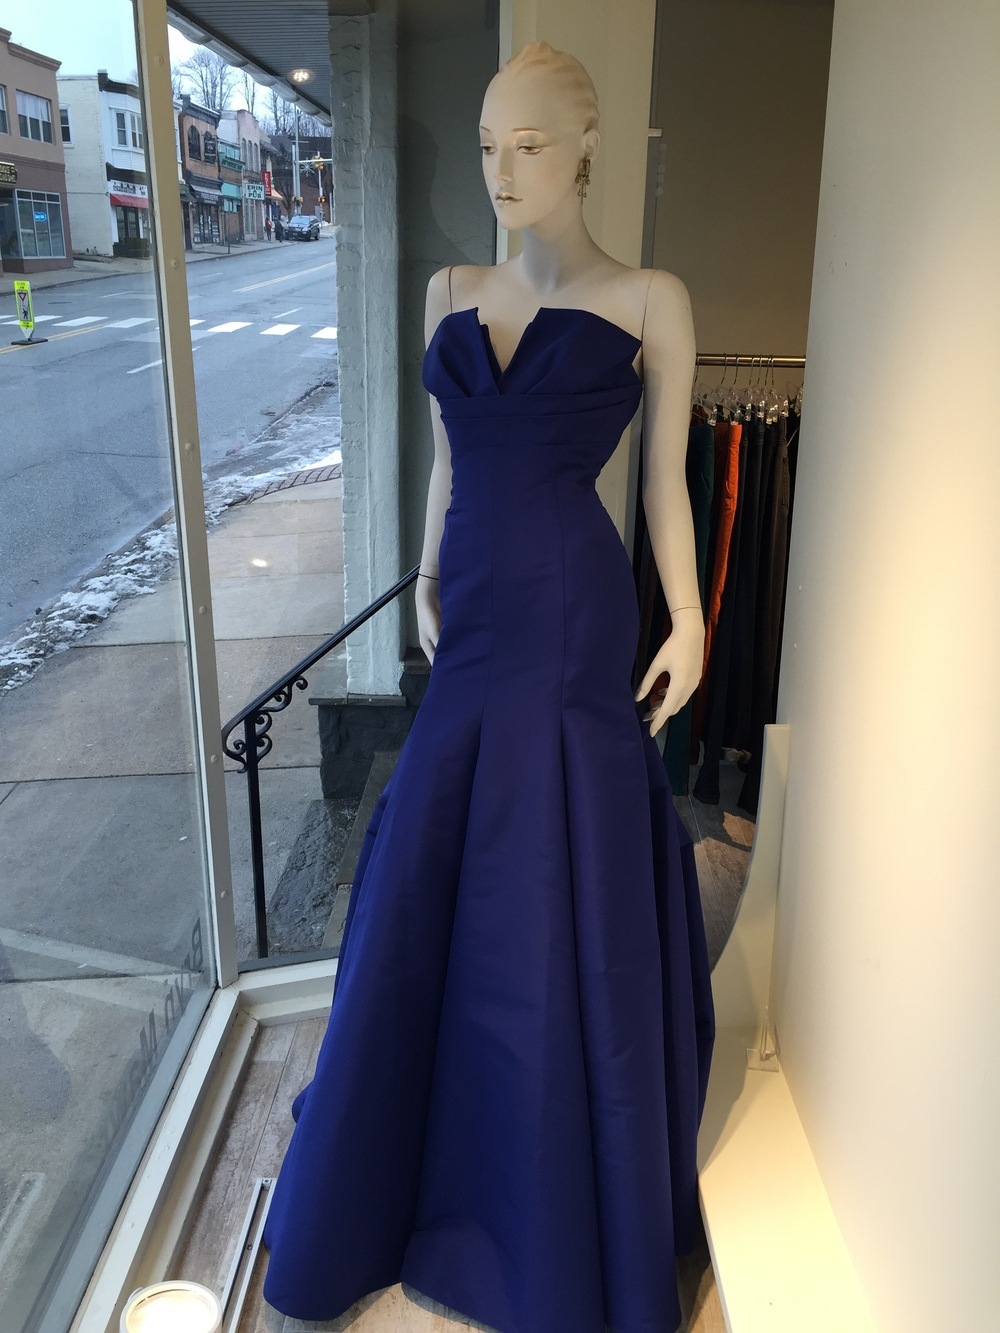 If you have an event, this silk faille evening gown is figure flattering and able to be customized for your specific needs.